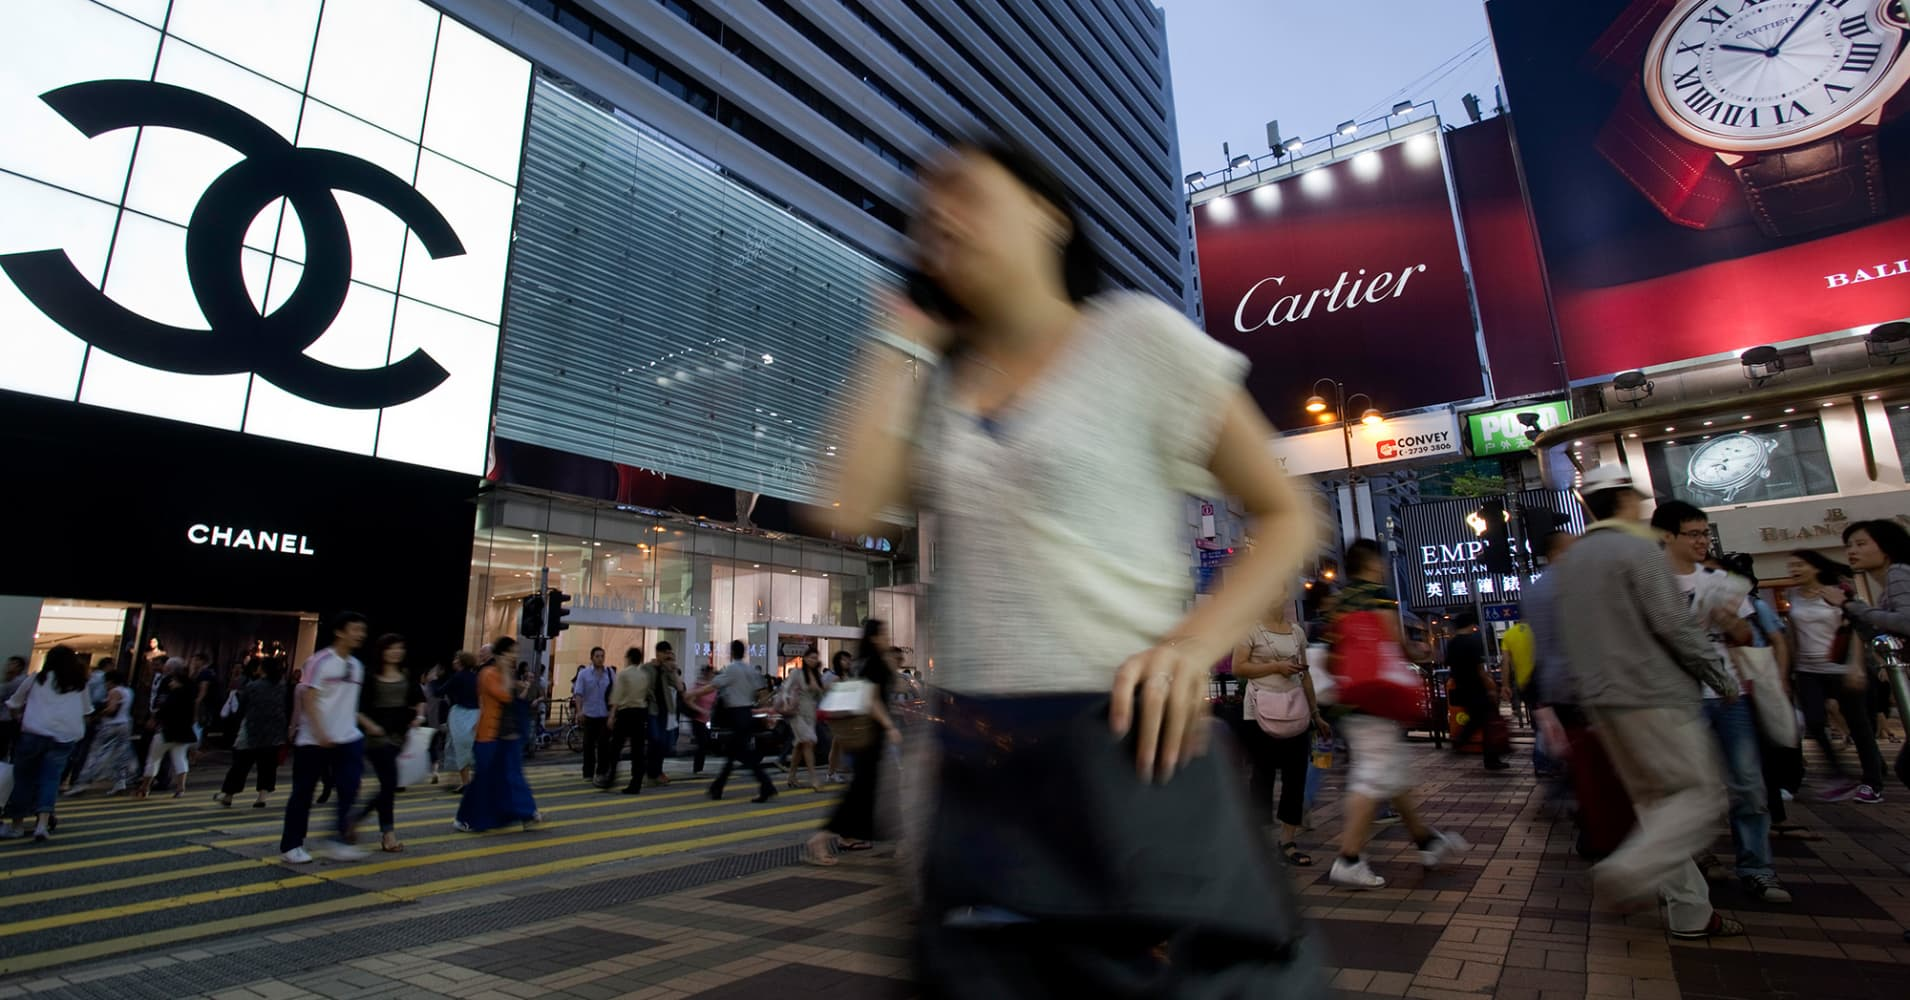 Brazil overtakes China in consumer sentiment, according to Credit Suisse survey